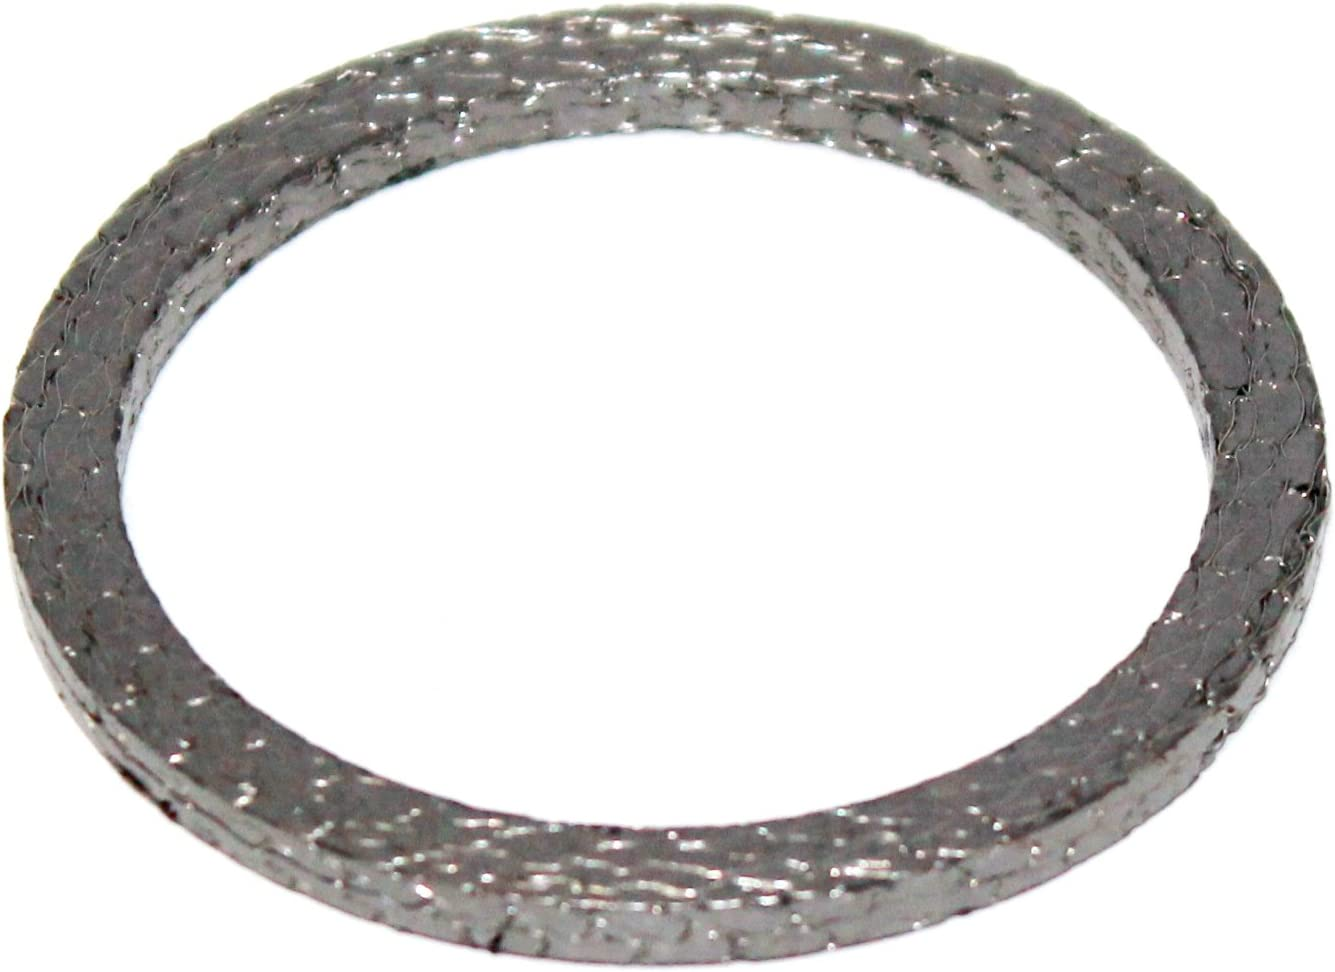 Caltric Exhaust Engine Gasket Latest item Seal Arctic 37 Cat 5 popular With Compatible